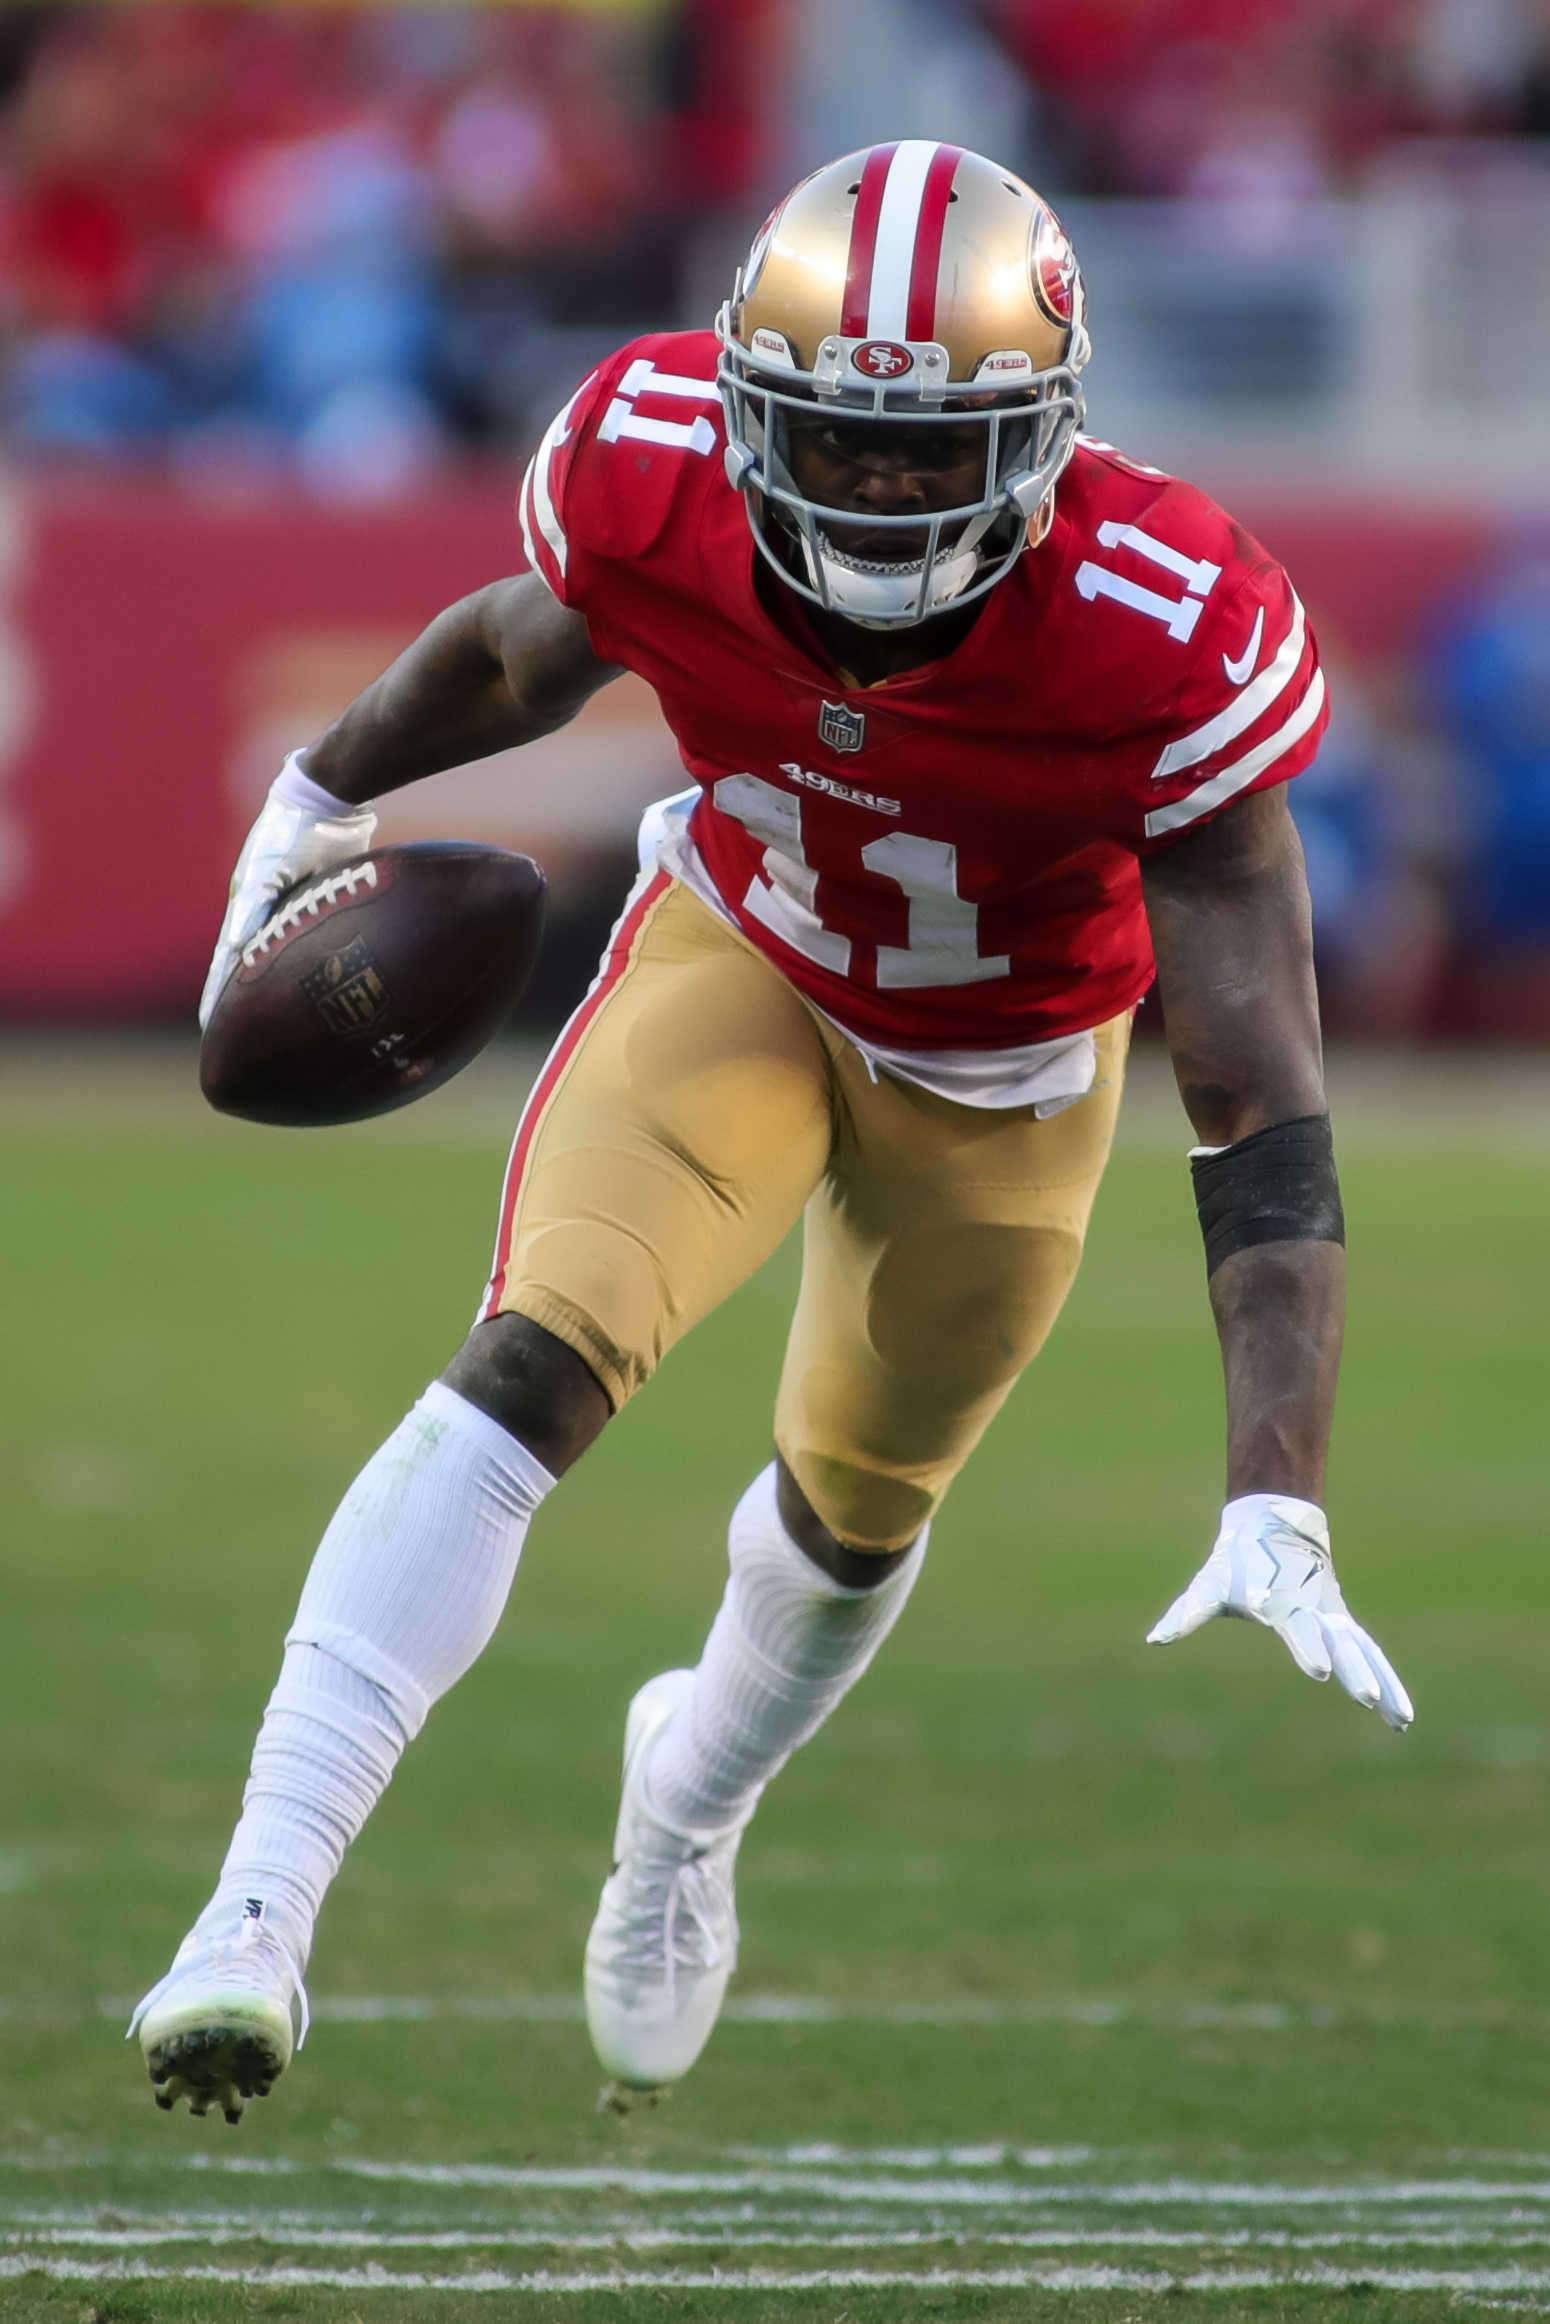 NFL: Tennessee Titans at San Francisco 49ers